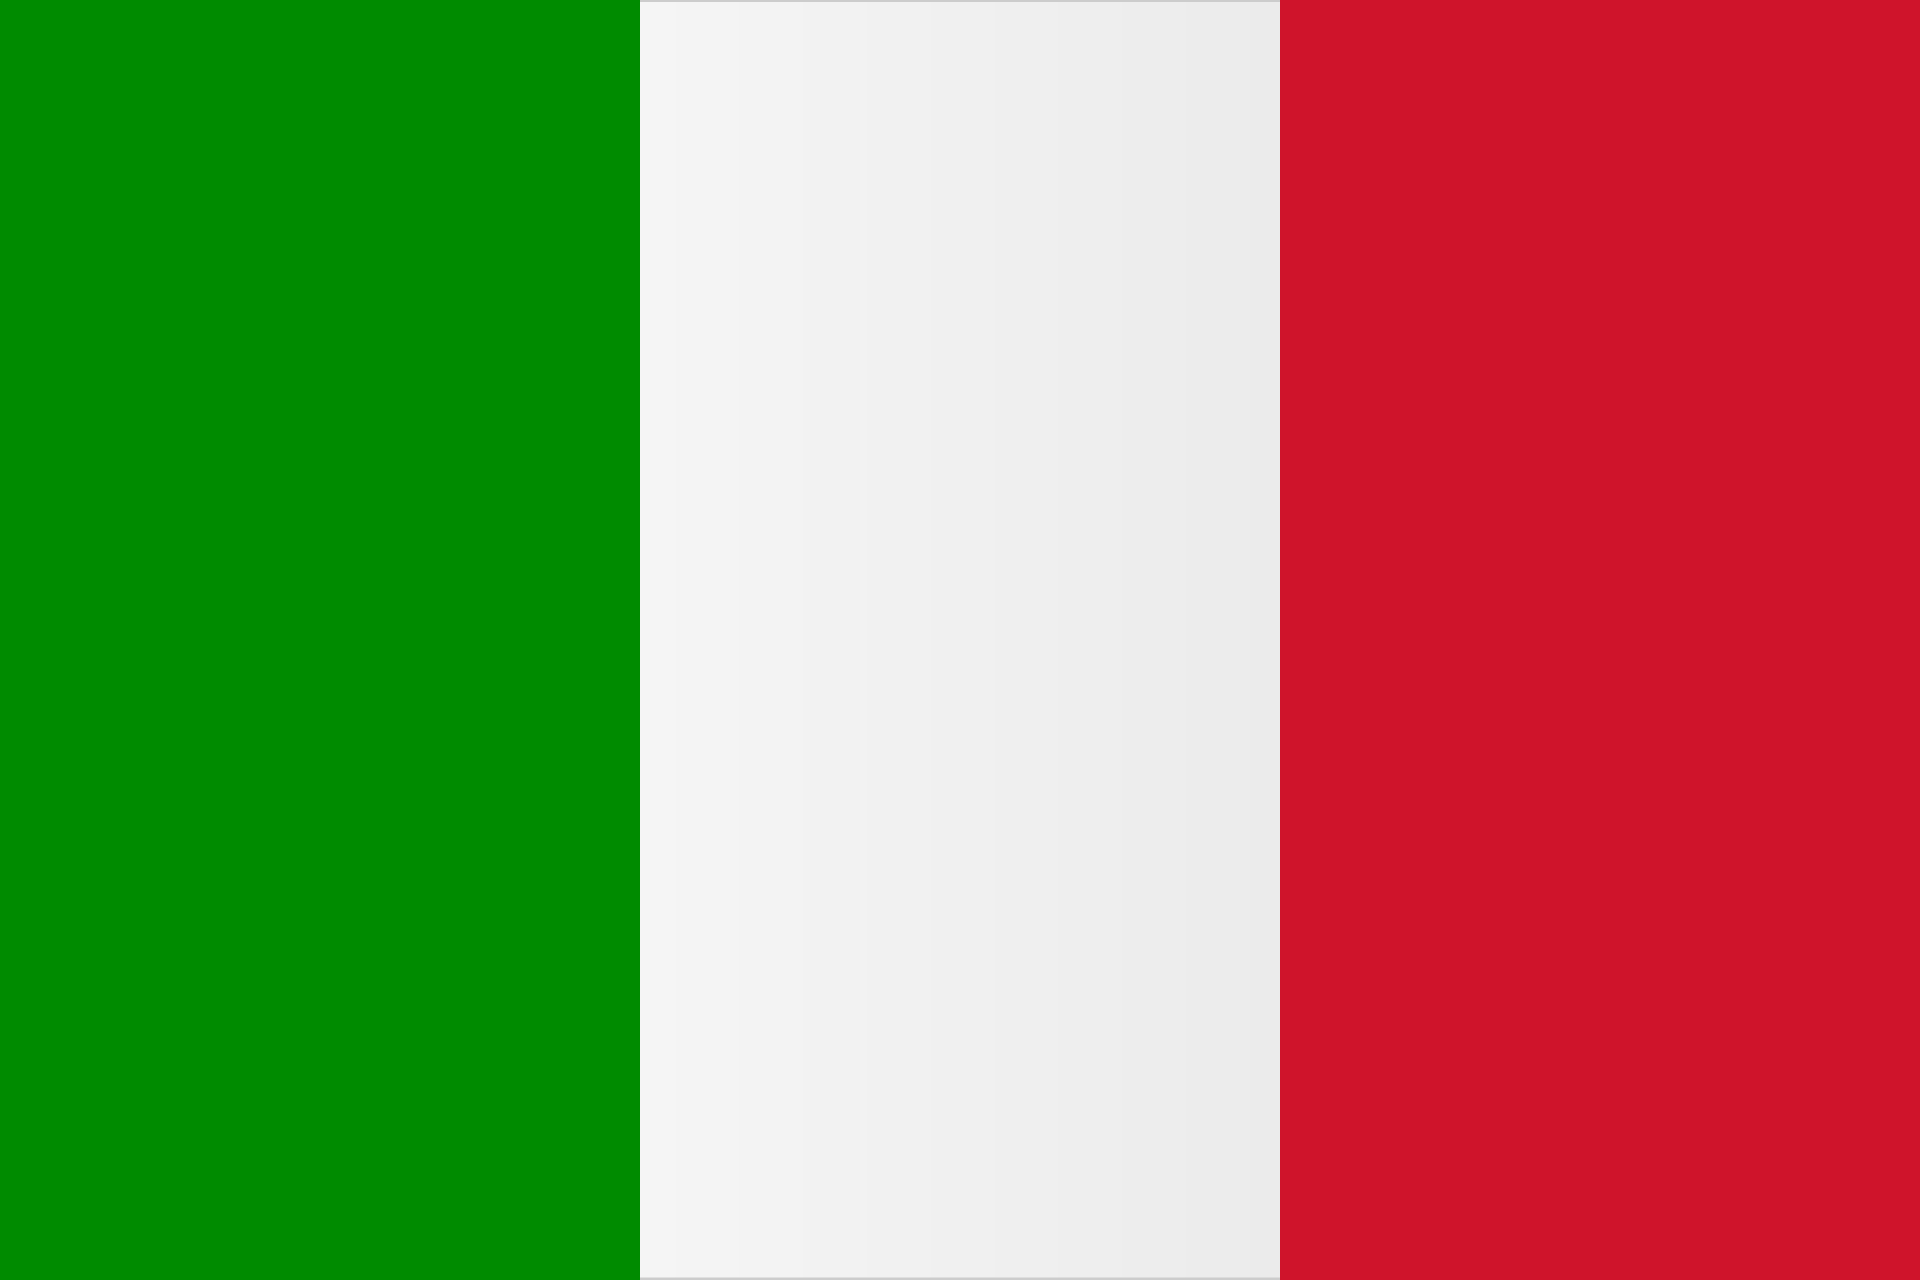 Italy Flag Download Wallpaper Illustpic In 2020 Italy Flag Flag Drawing Argentina Flag